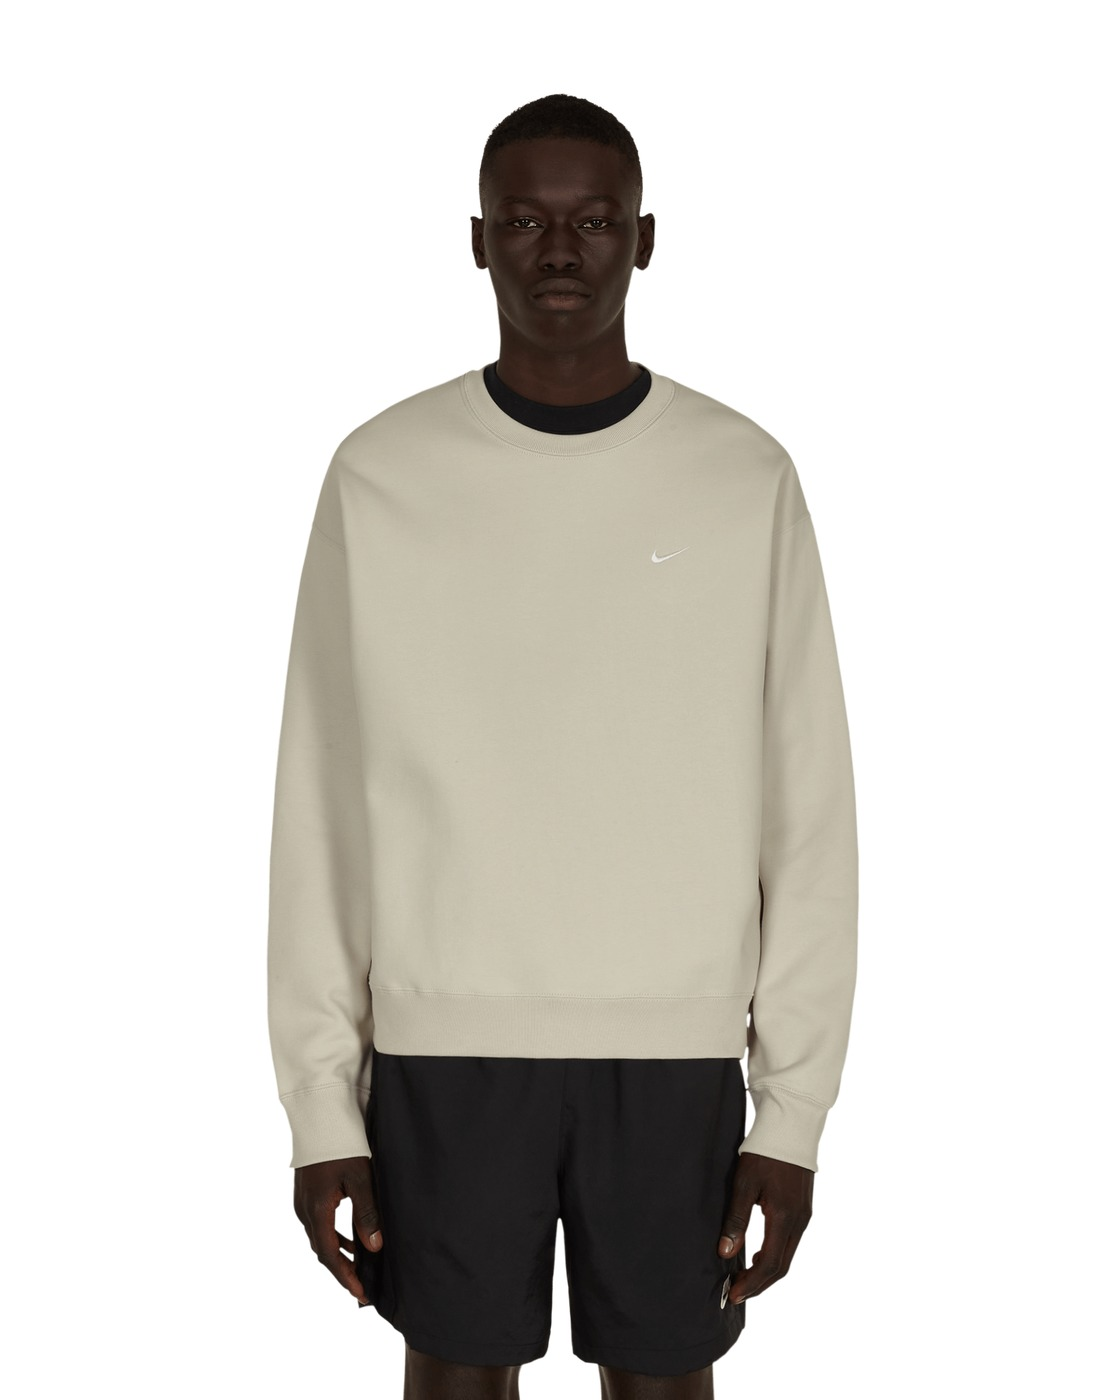 Photo: Nike Special Project Solo Swoosh Crewneck Sweatshirt Light Bone/White